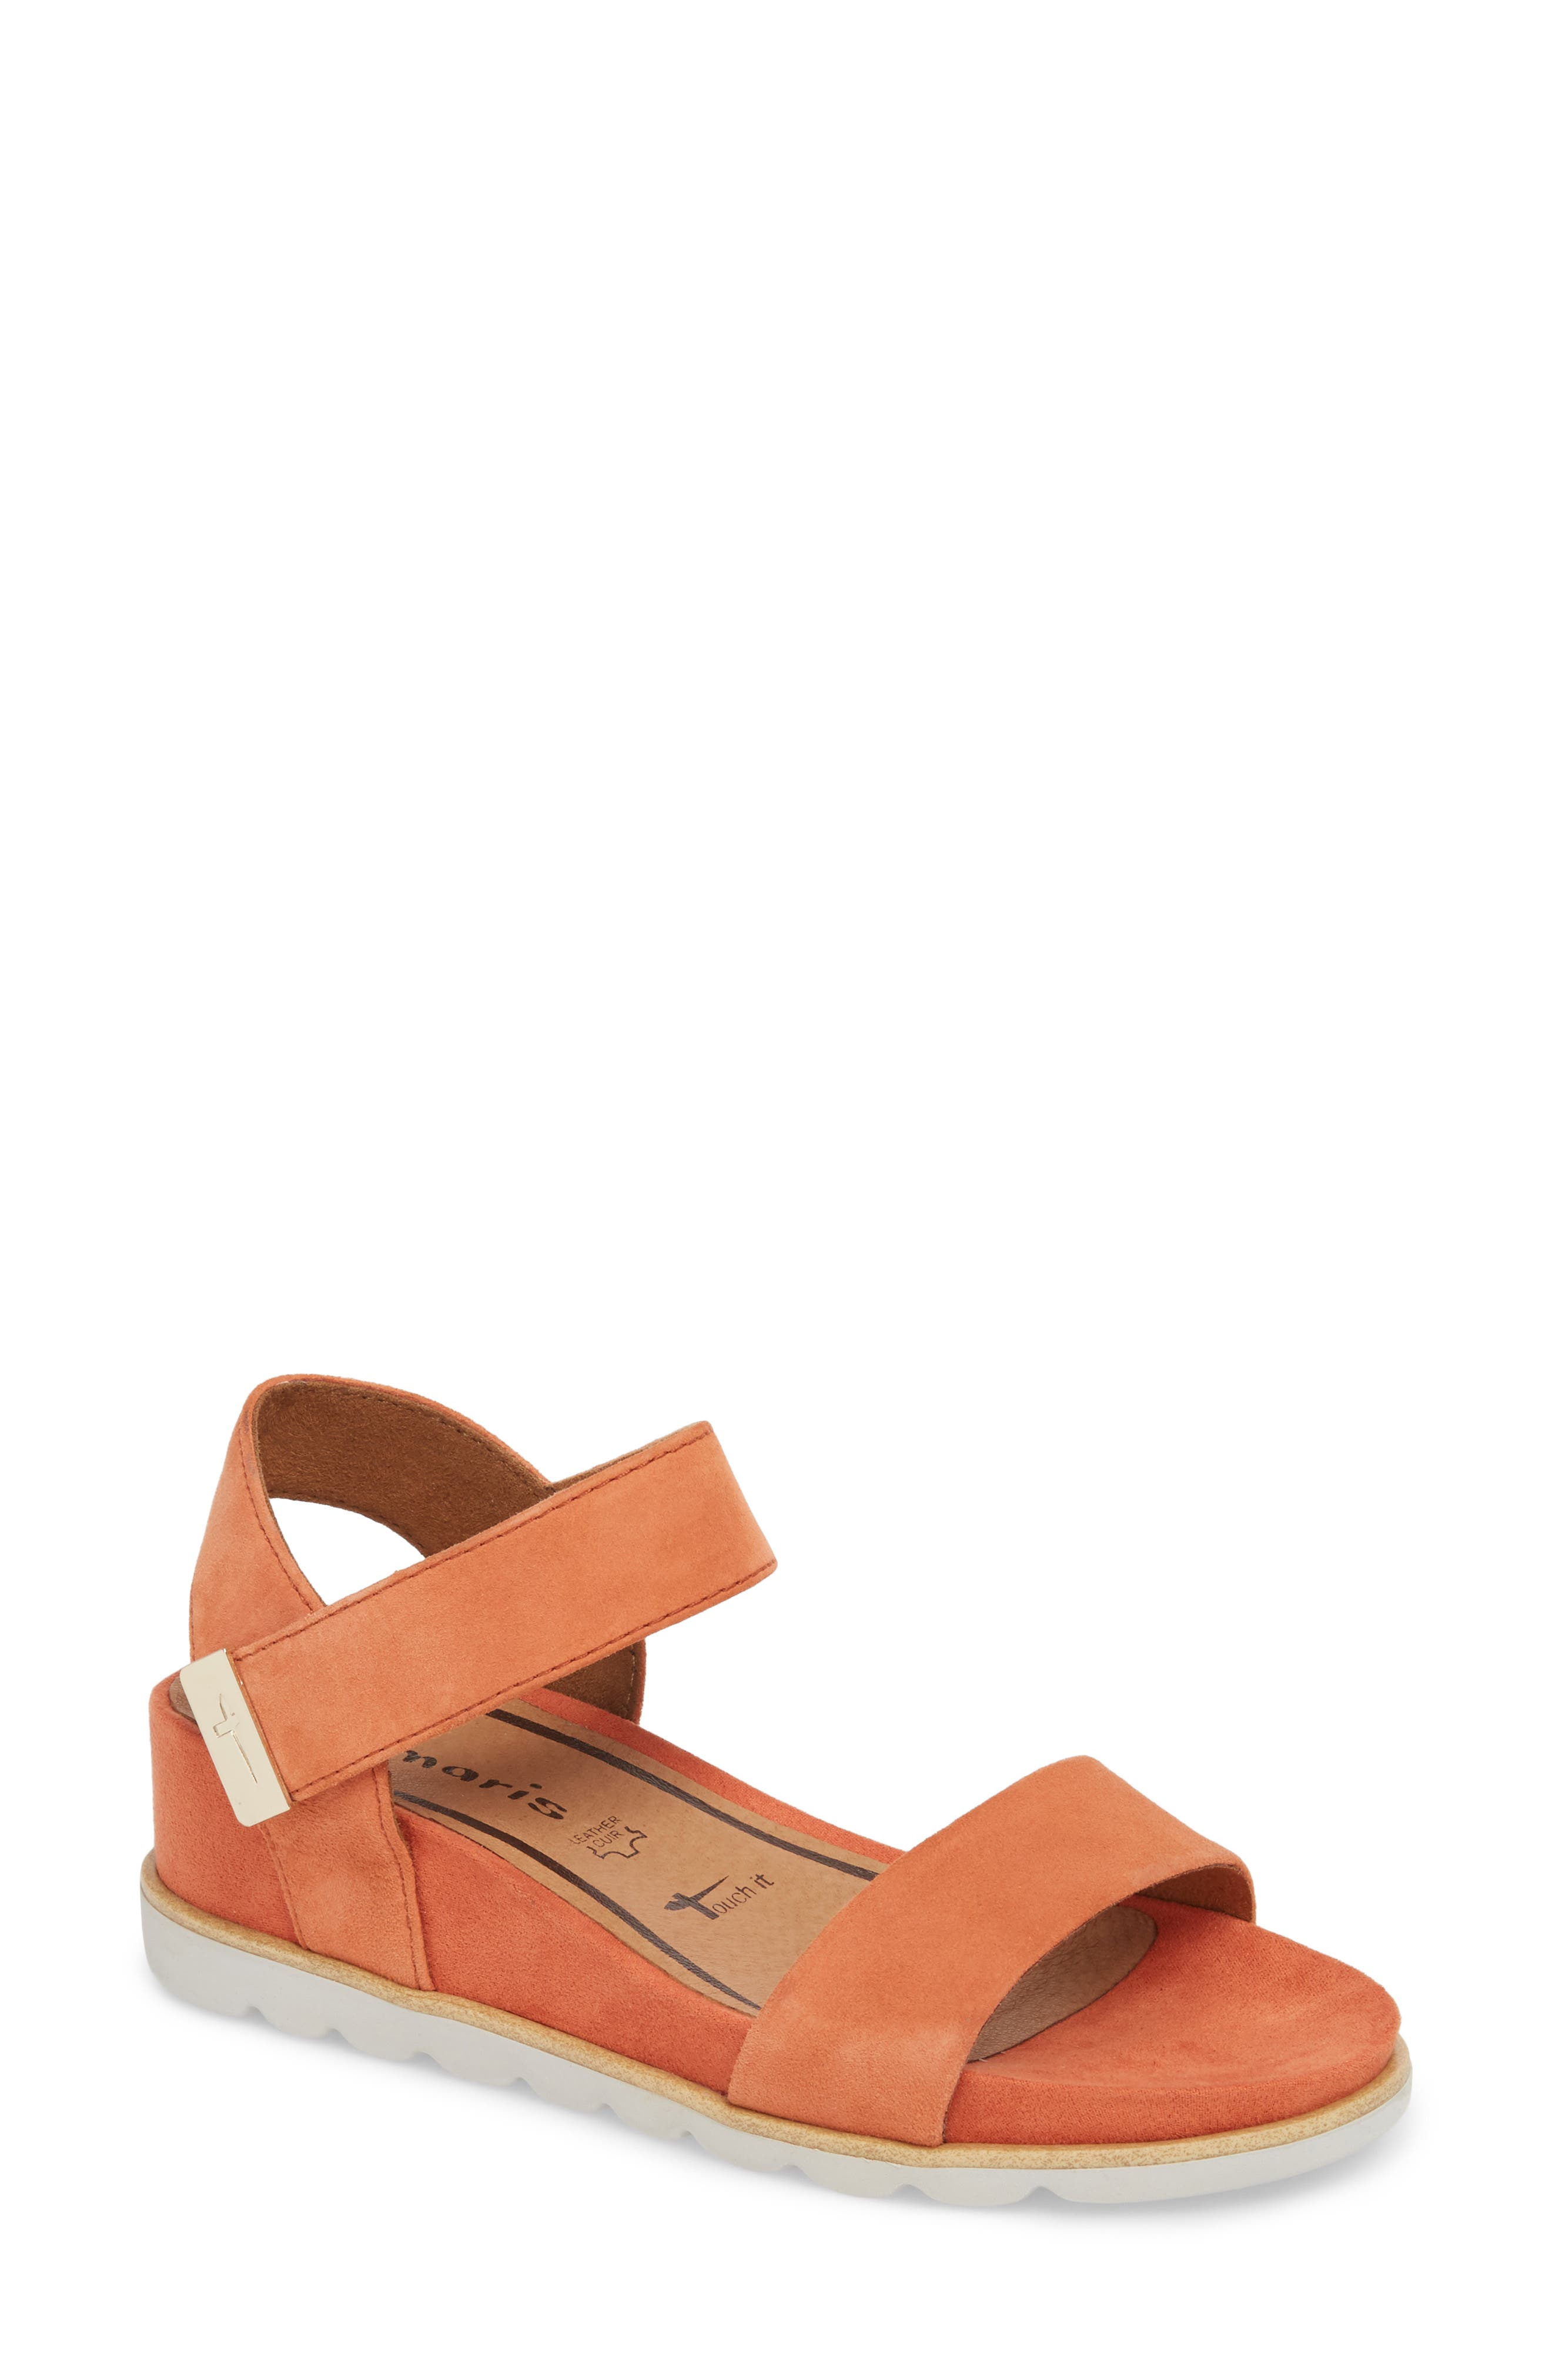 Cory Wedge Sandal,                             Main thumbnail 3, color,